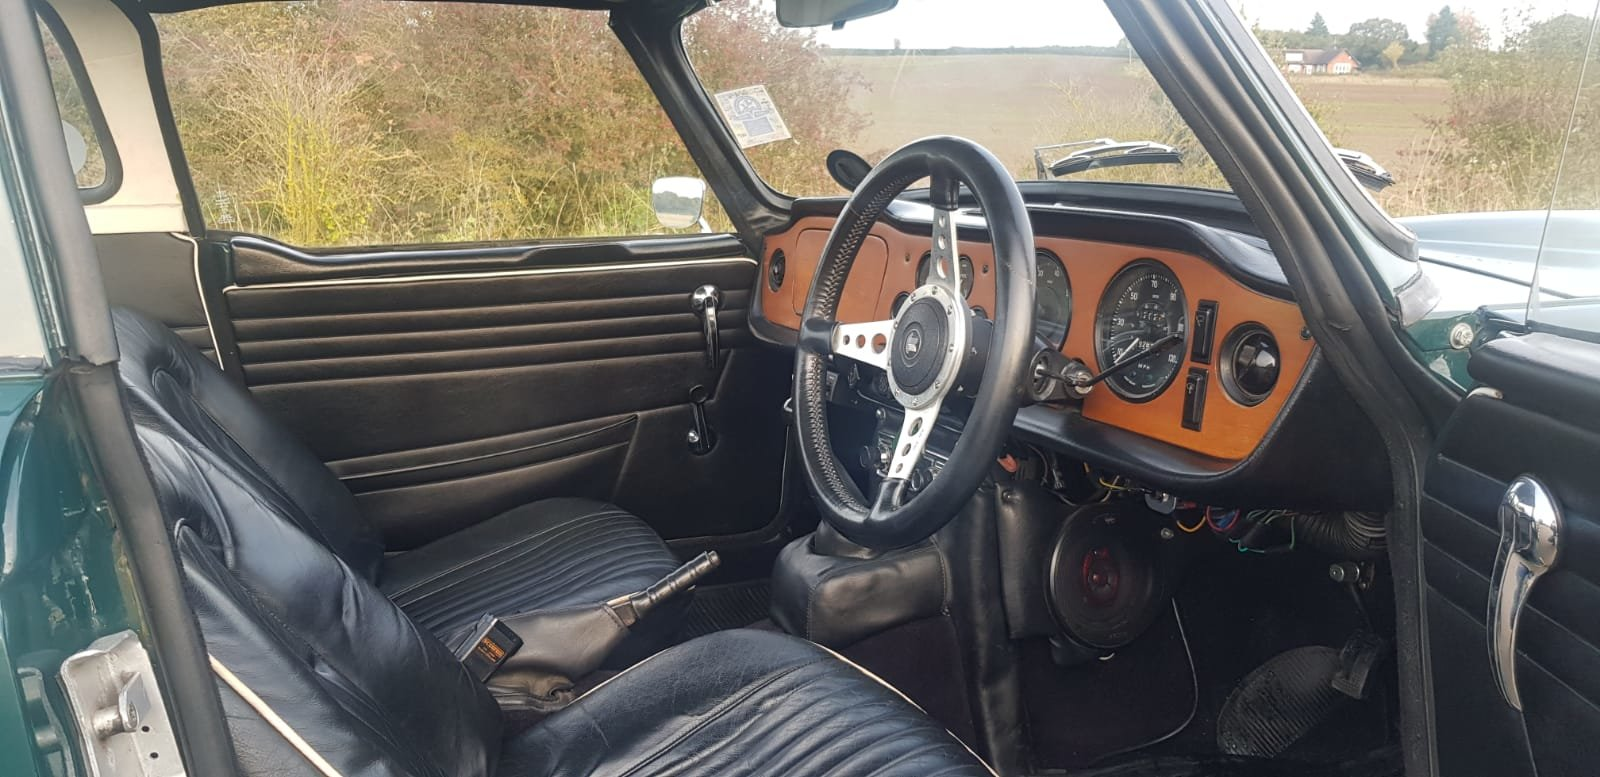 1968/G TRIUMPH TR5 PI WITH SURREY TOP MANUAL O/D GREEN For Sale (picture 4 of 6)